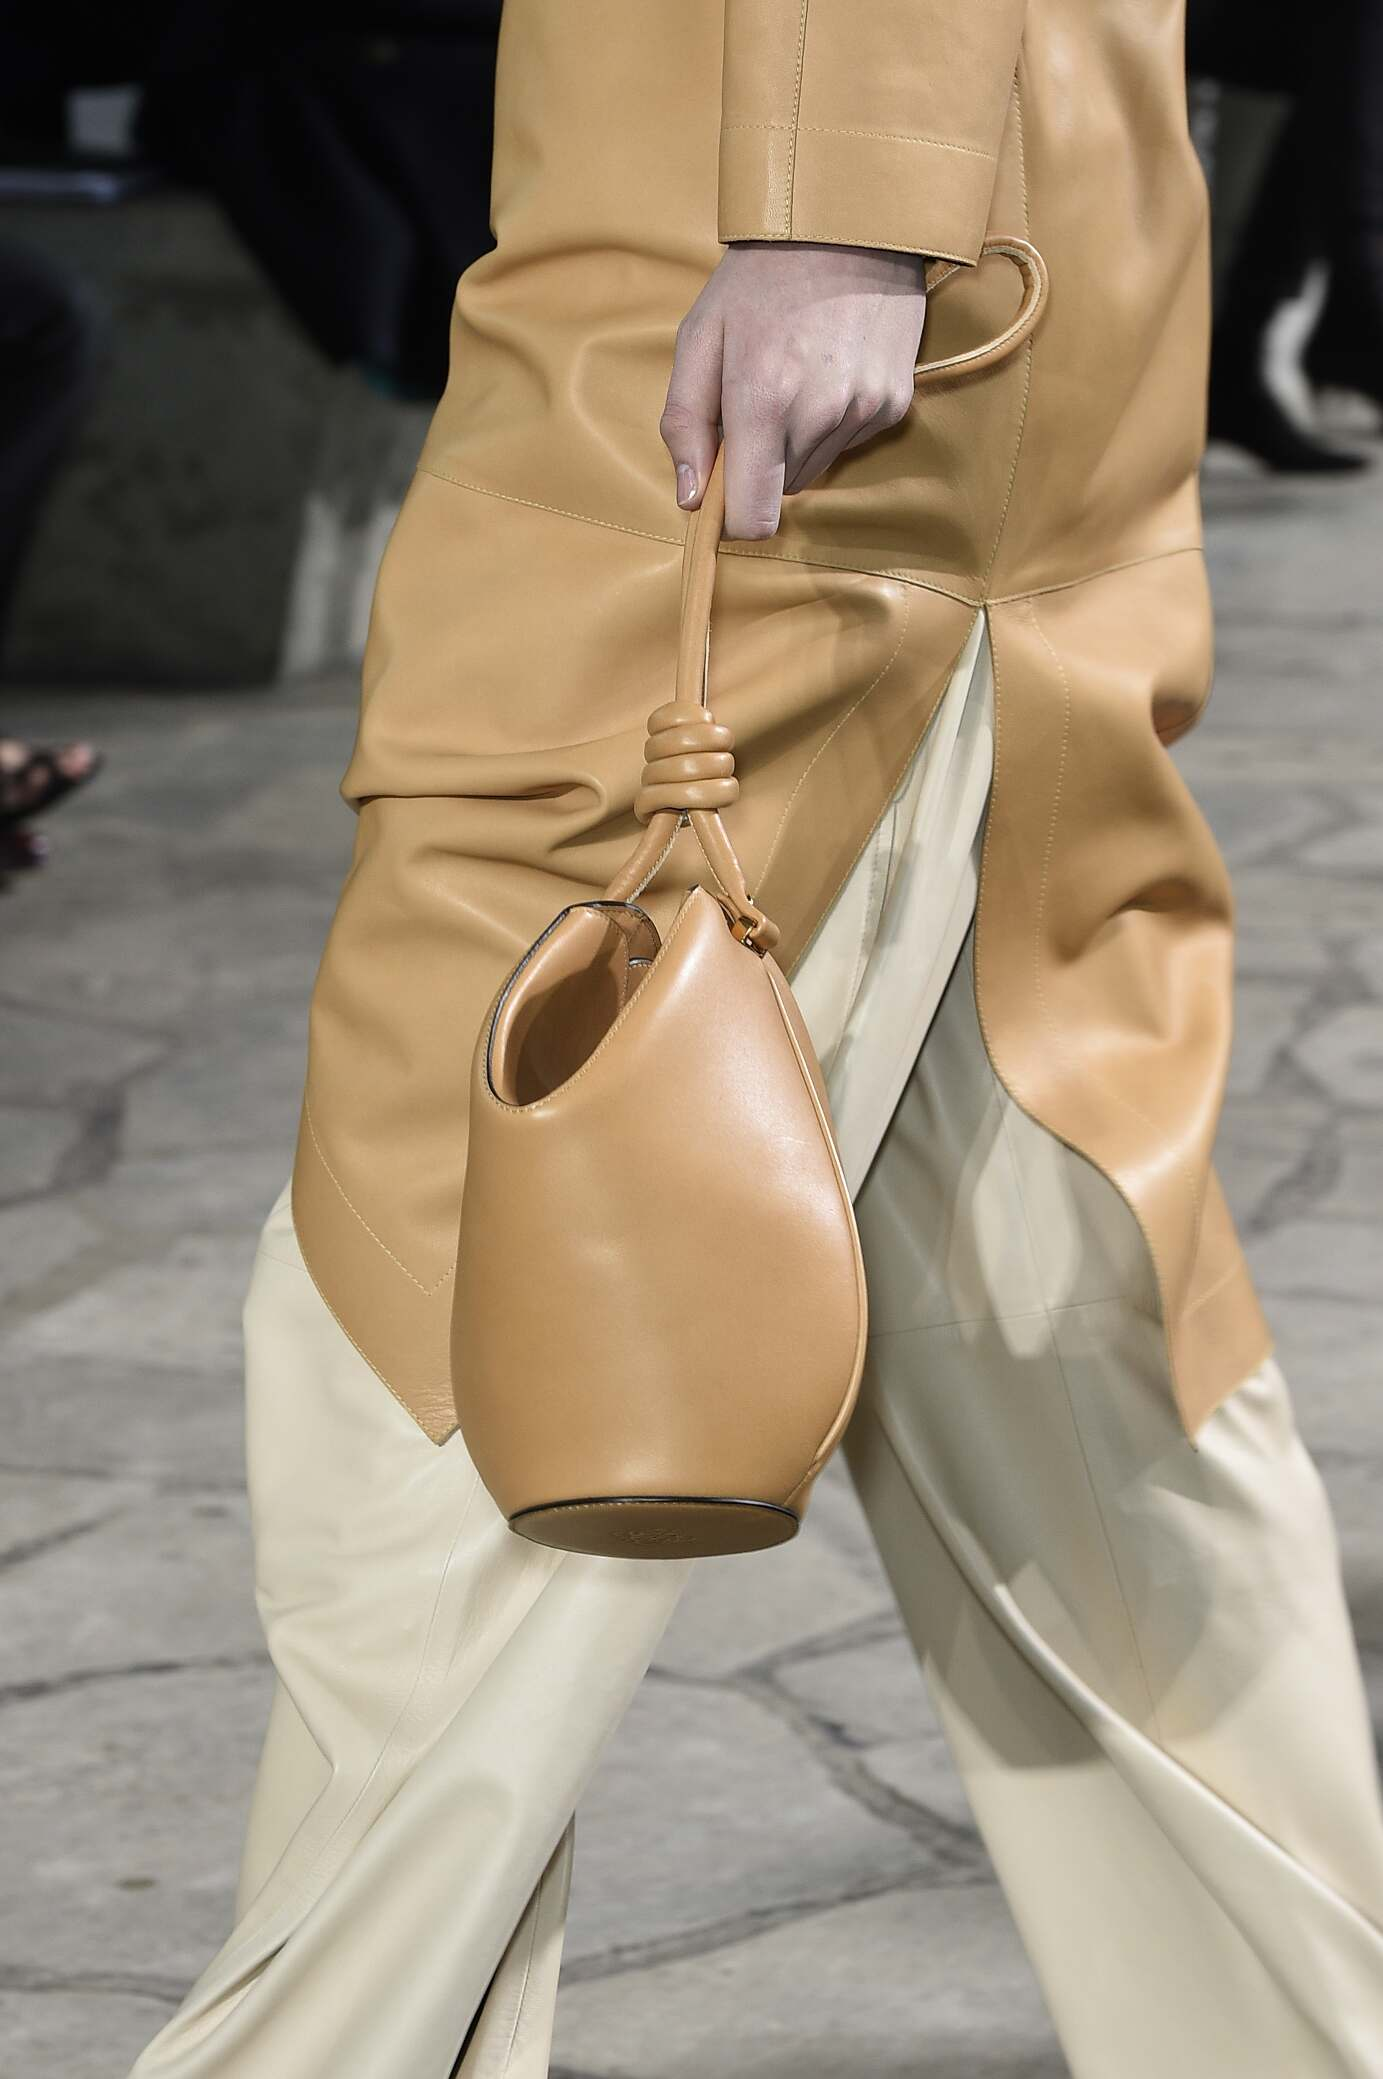 2015 16 Fall Winter Fashion Collection Loewe Bag Detail